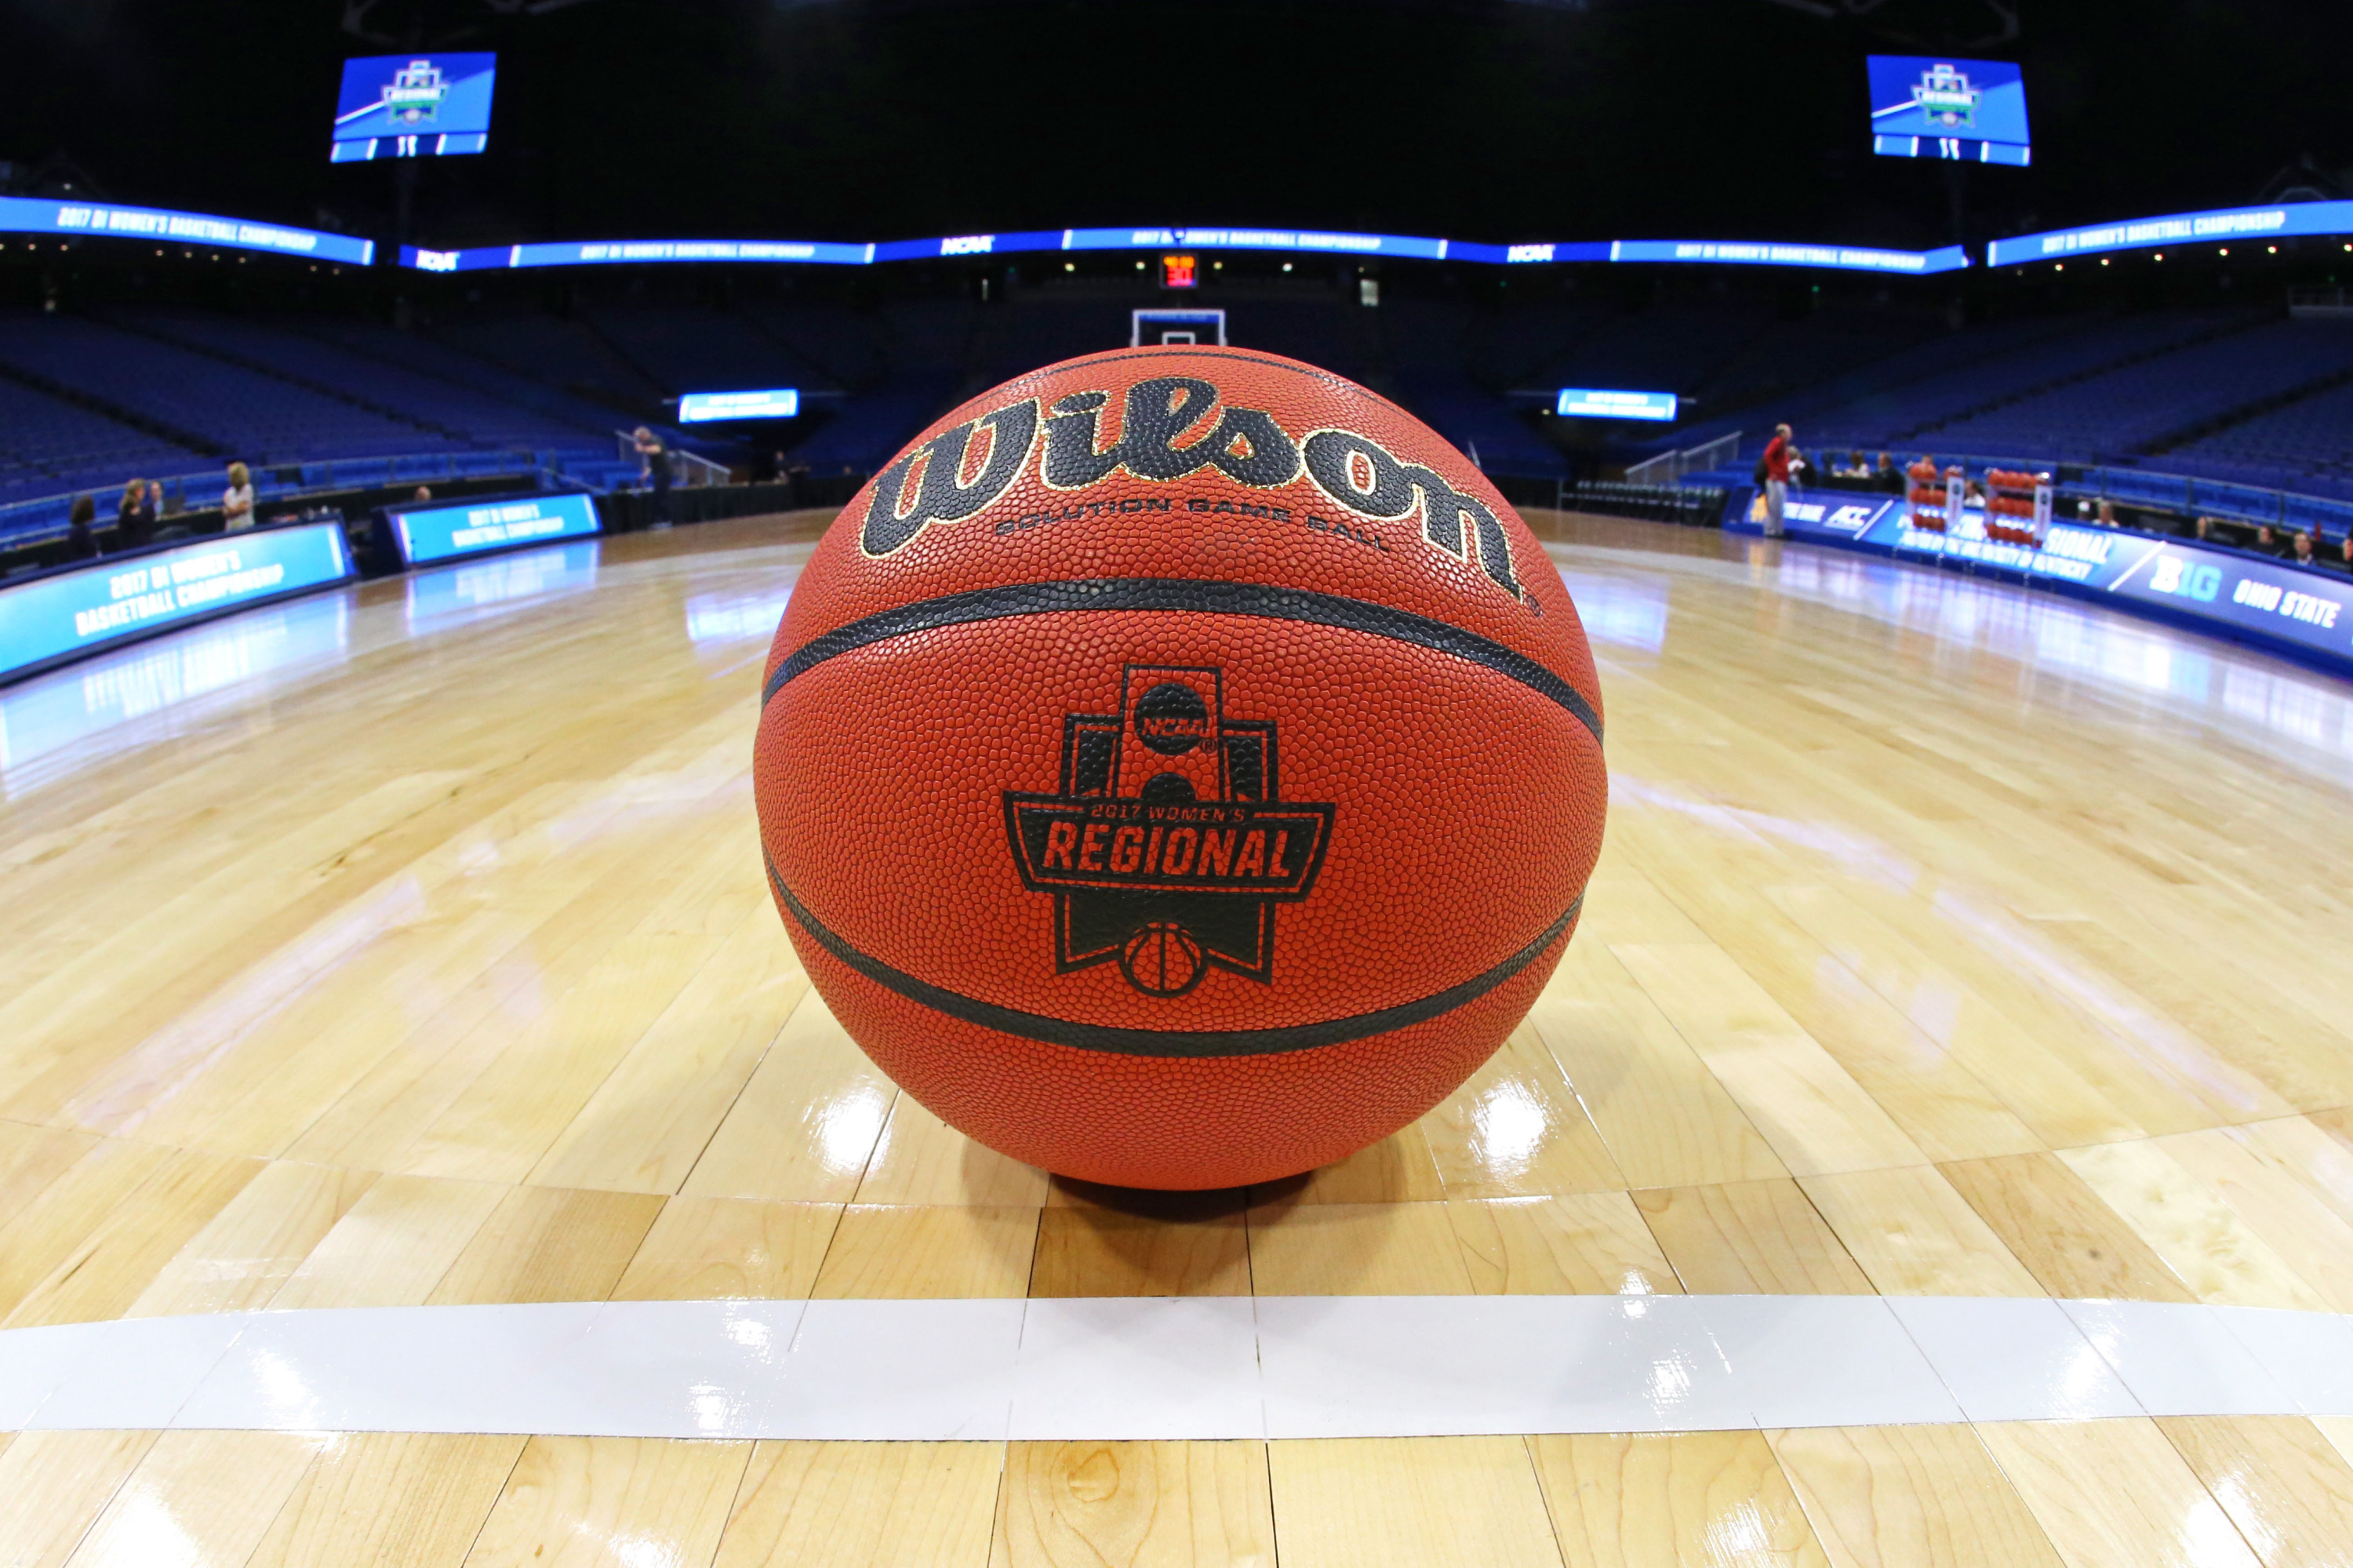 A view of the NCAA Women's Regional logo on an official Wilson basketball prior to the game of the Ohio State Buckeyes against the Notre Dame Fighting Irish in the semifinals of the Lexington Regional of the women's 2017 NCAA Tournament at Rupp Arena. (Aaron Doster-USA TODAY Sports)